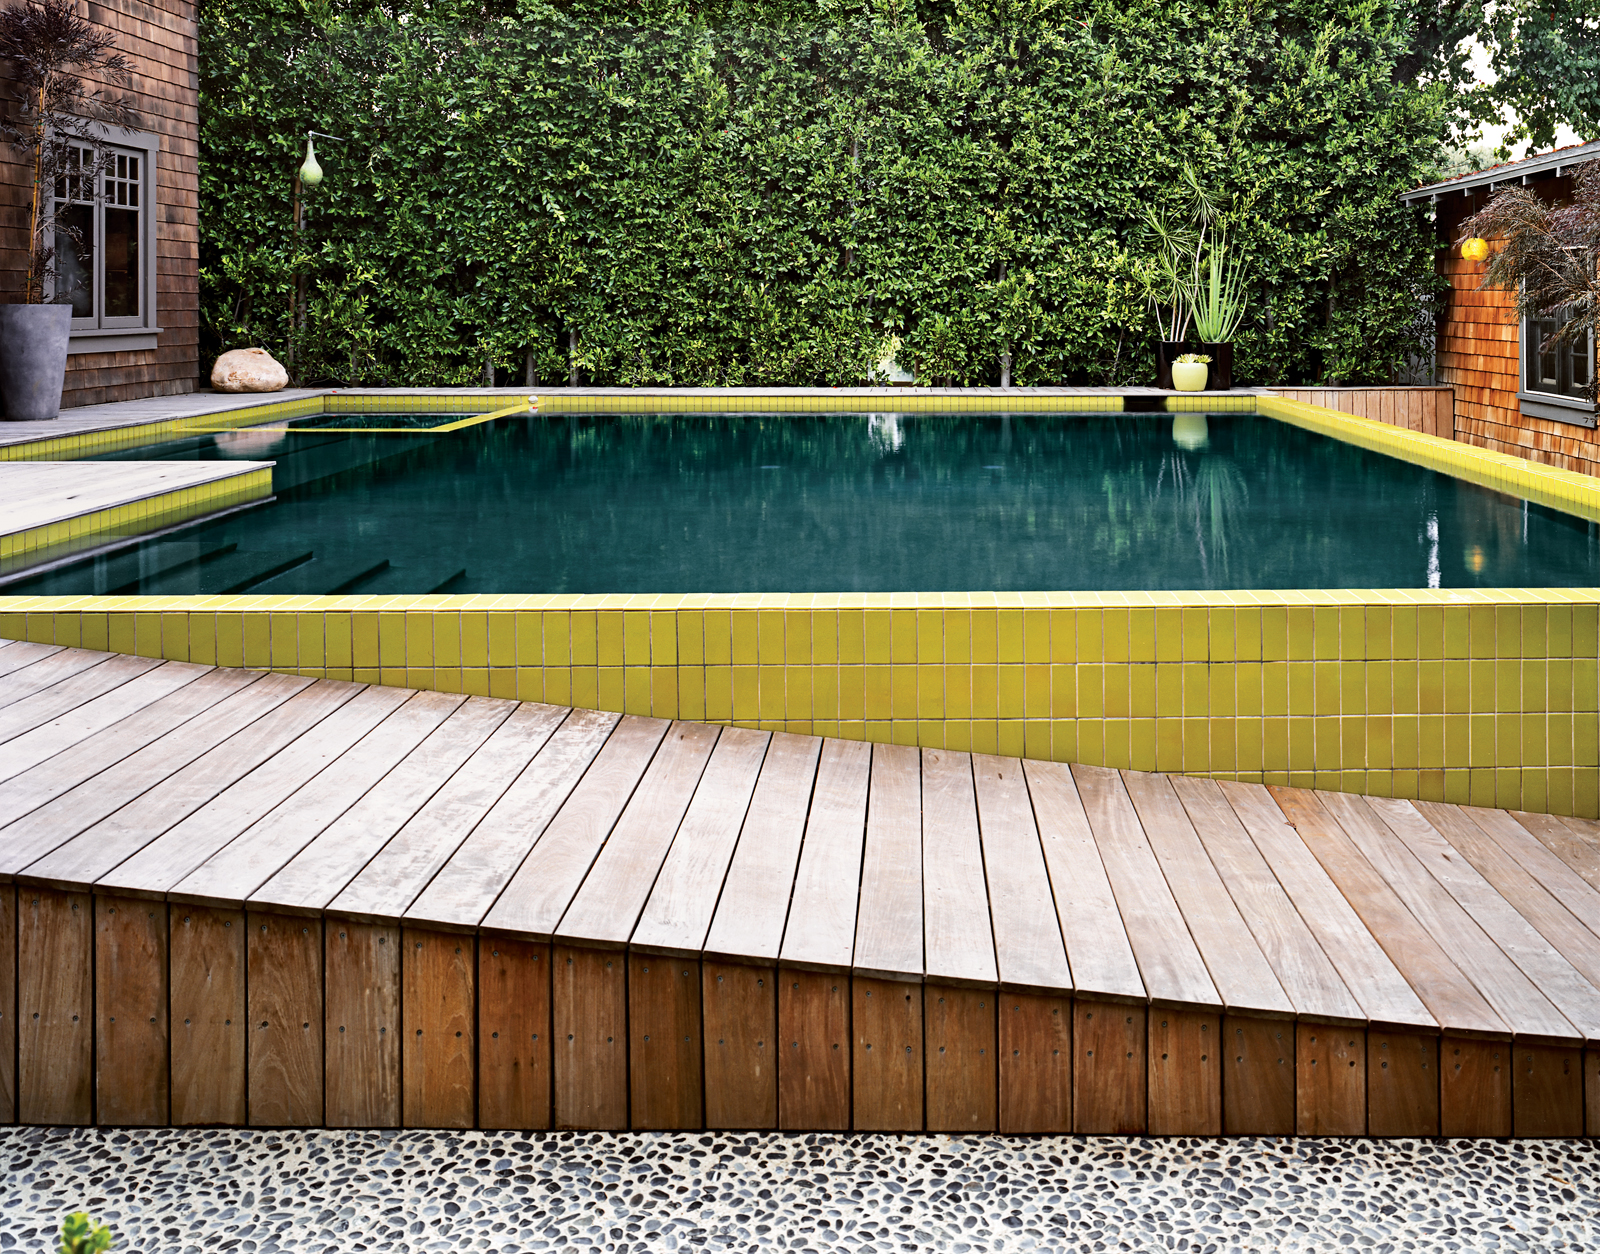 Tiled pool with descending wood plank